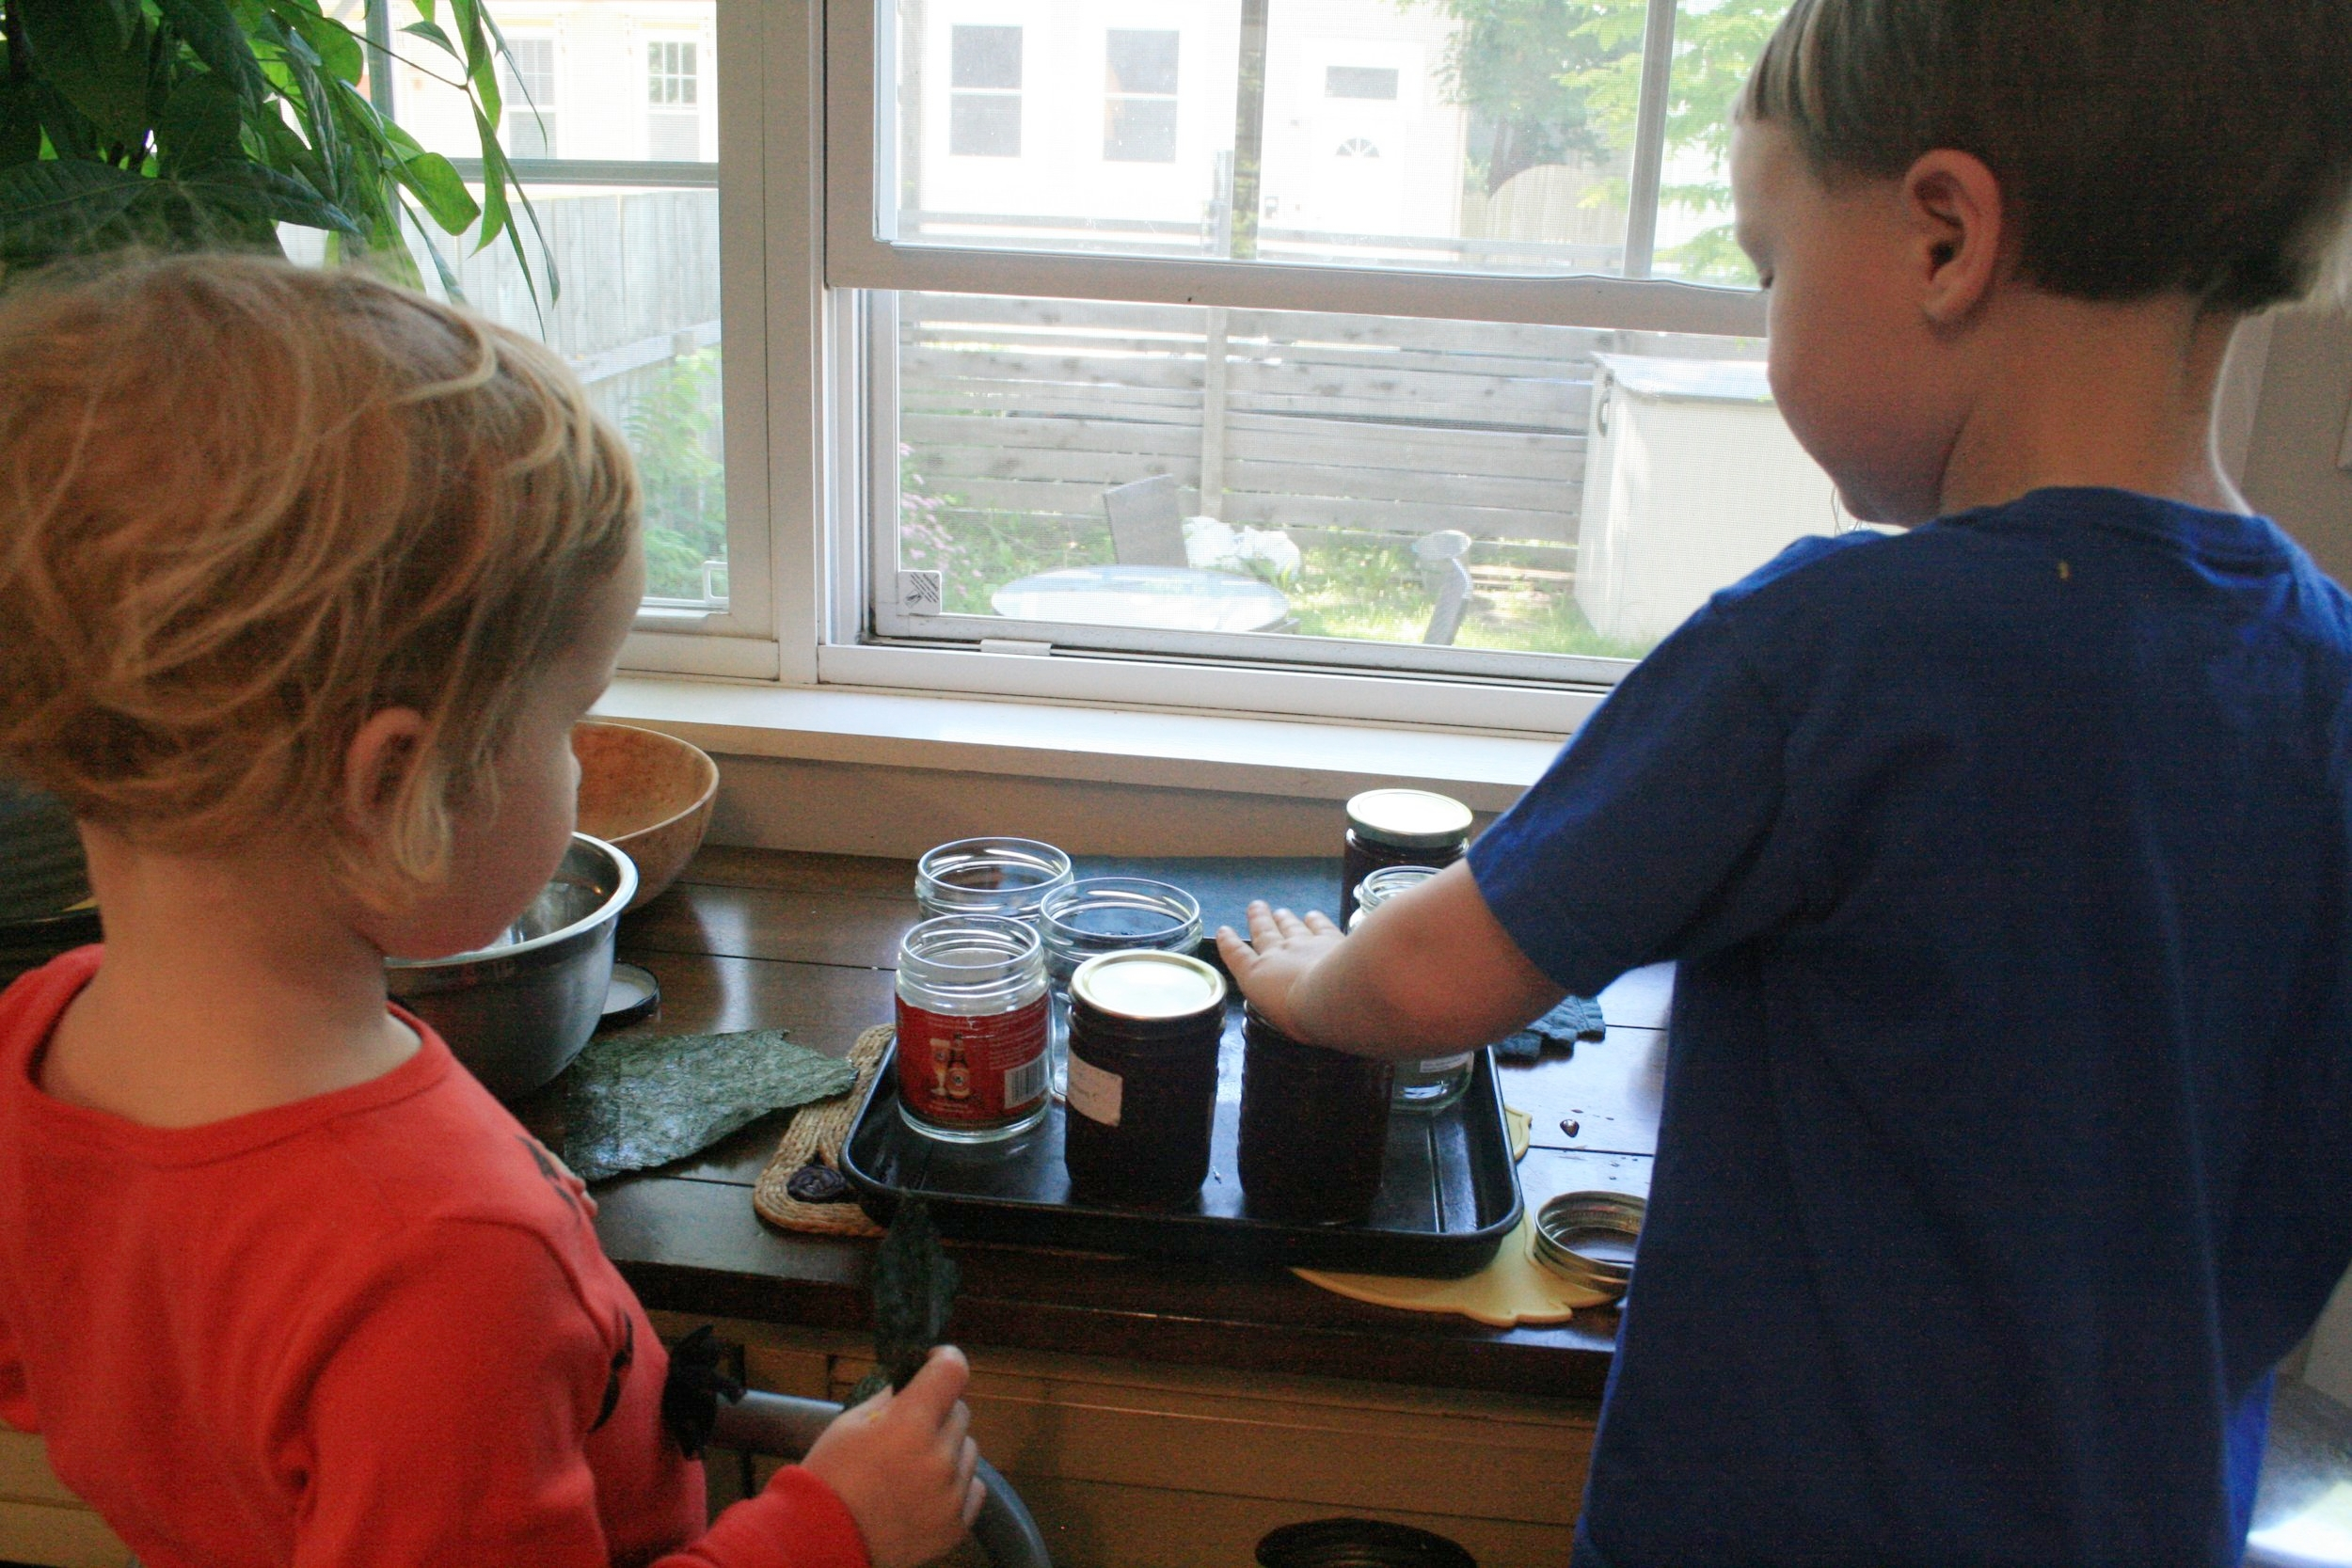 Pressing the lids down. Take care - the jam, and the jars, are hot!